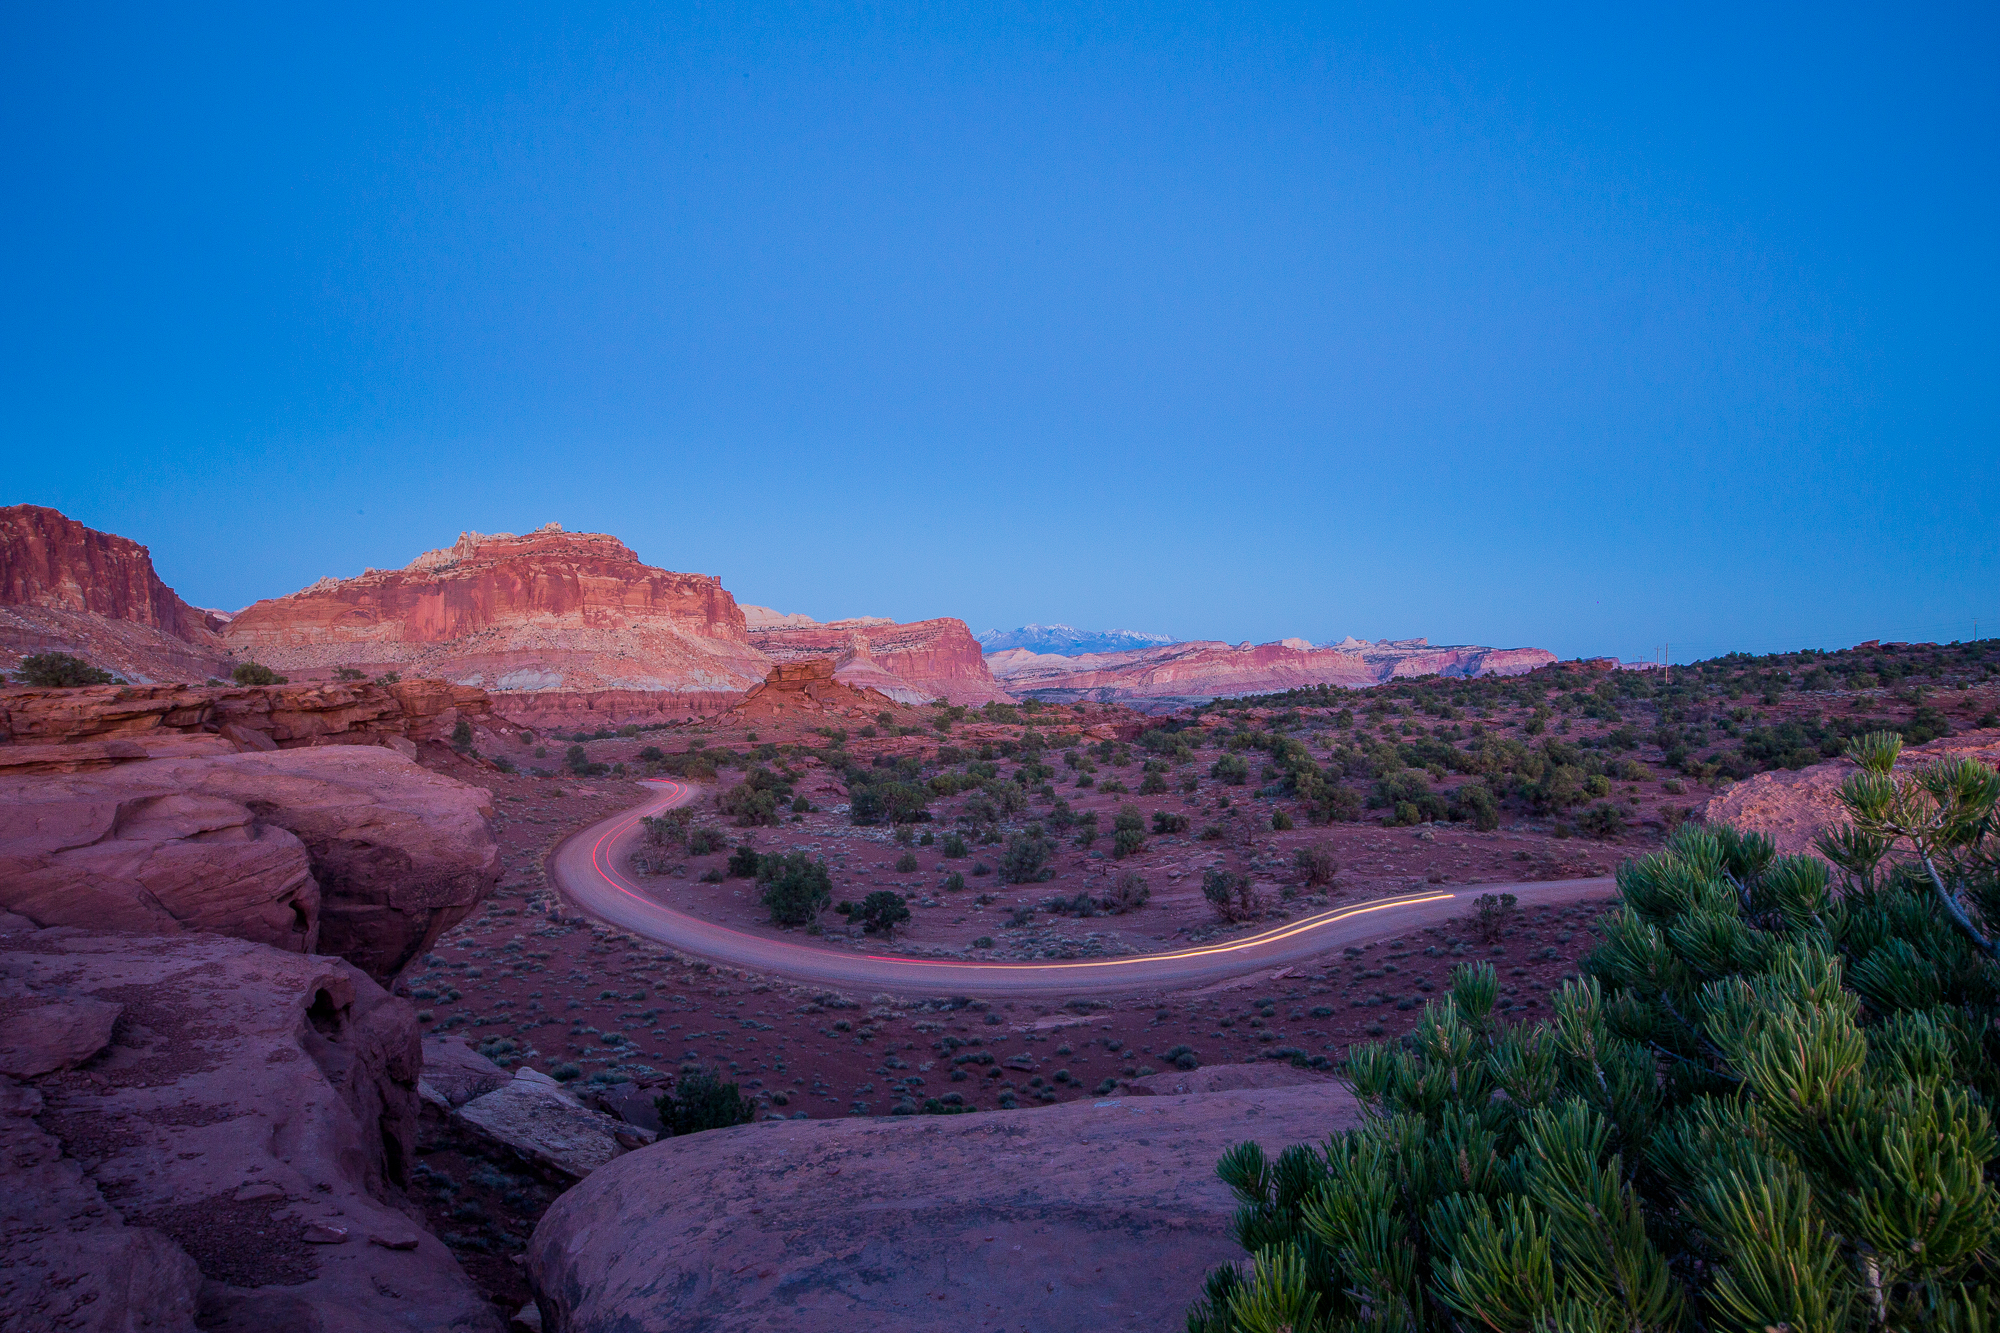 10_CapitolReef_CottonCandy-2.jpg